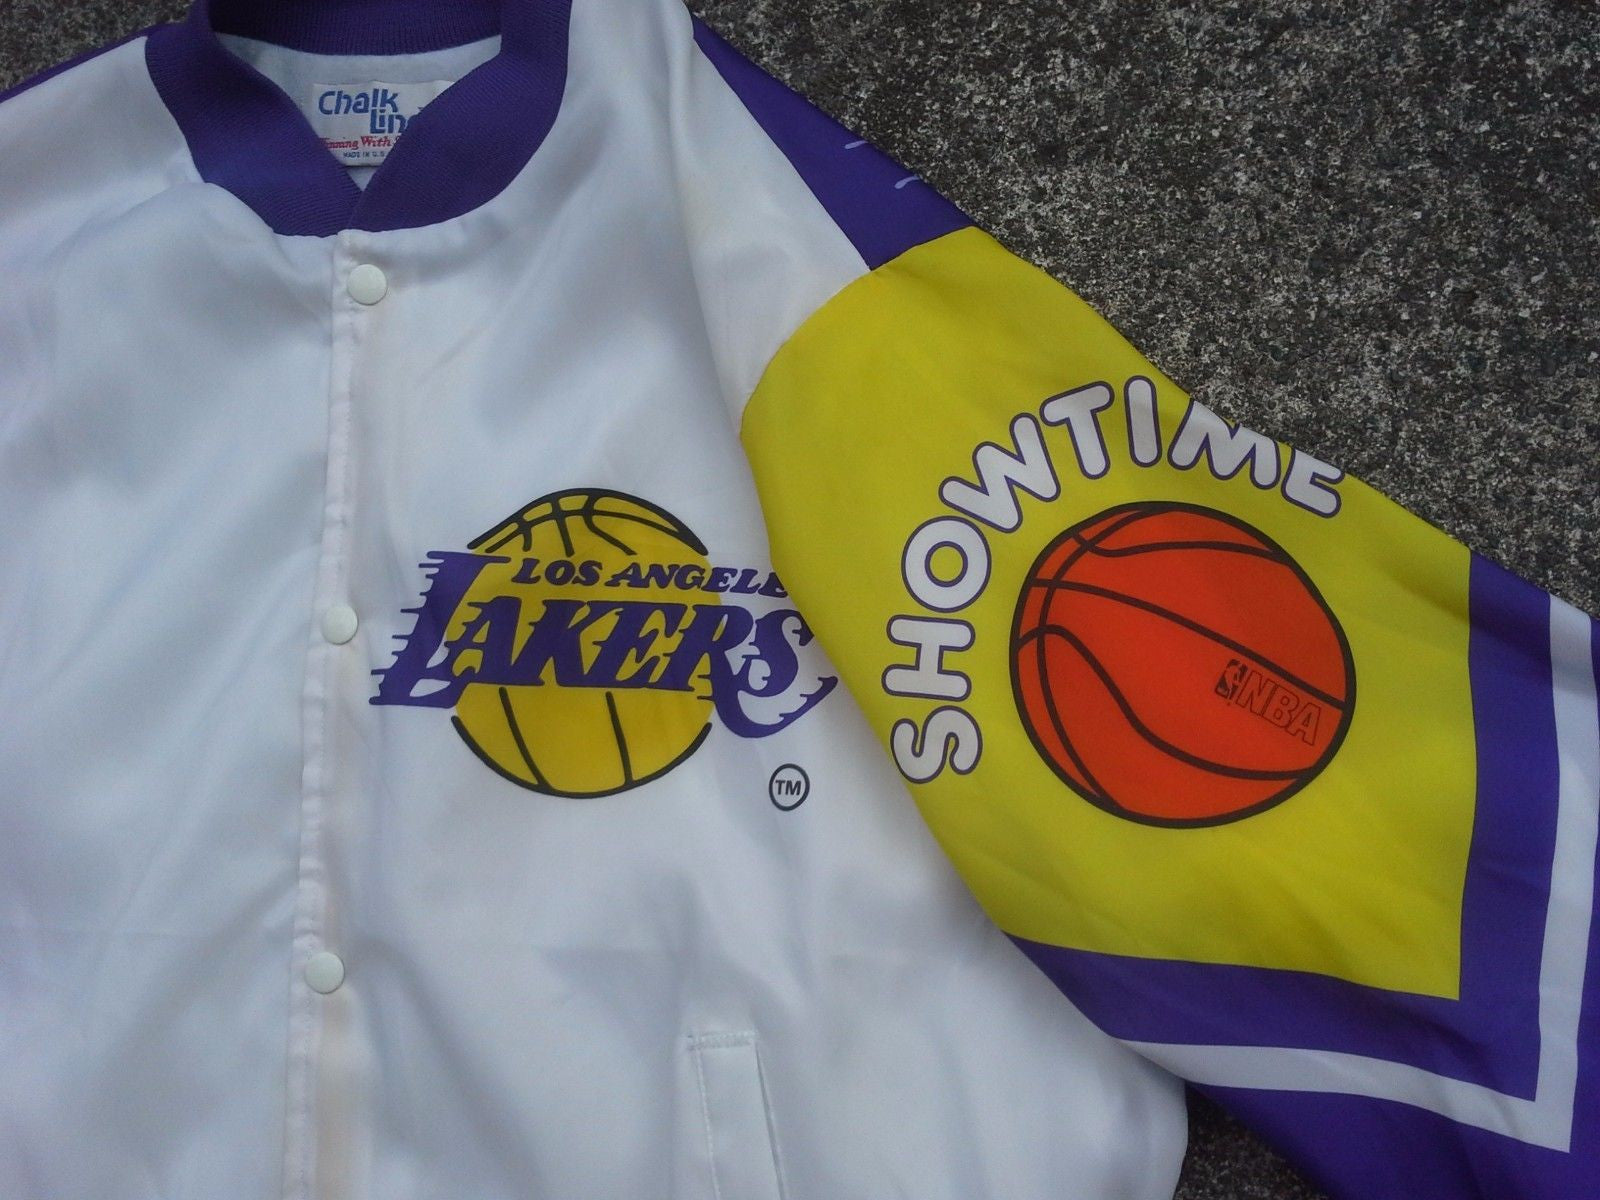 Vtg Los Angeles Lakers Fanimation Jacket By Chalk Line